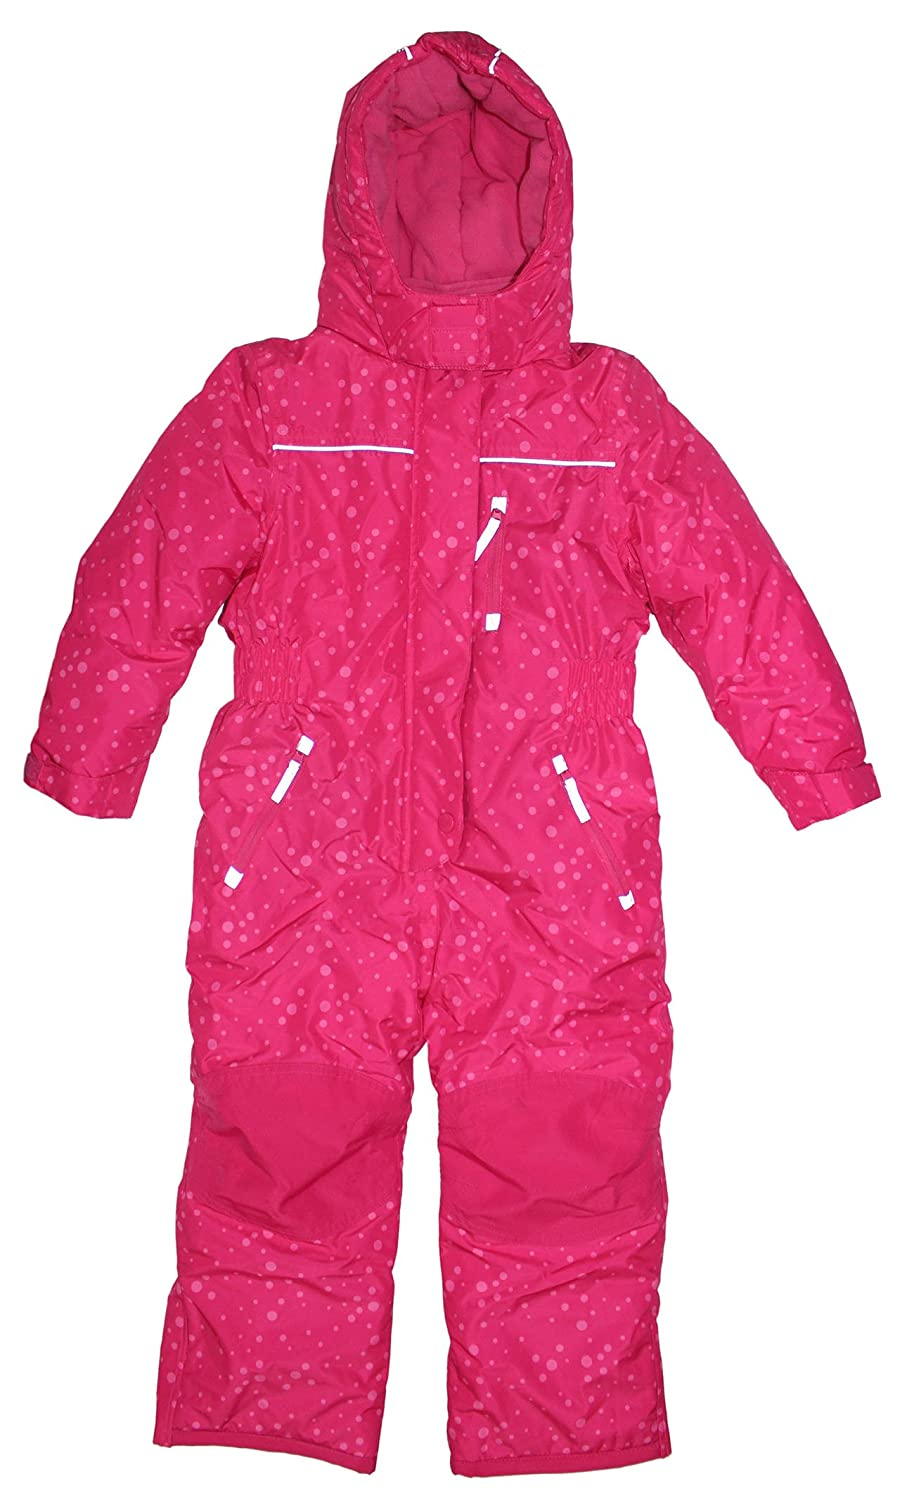 xiangye Little Girls and Toddler 1 Piece Pink Snowsuit Coveralls Snow Wear Sport Suit